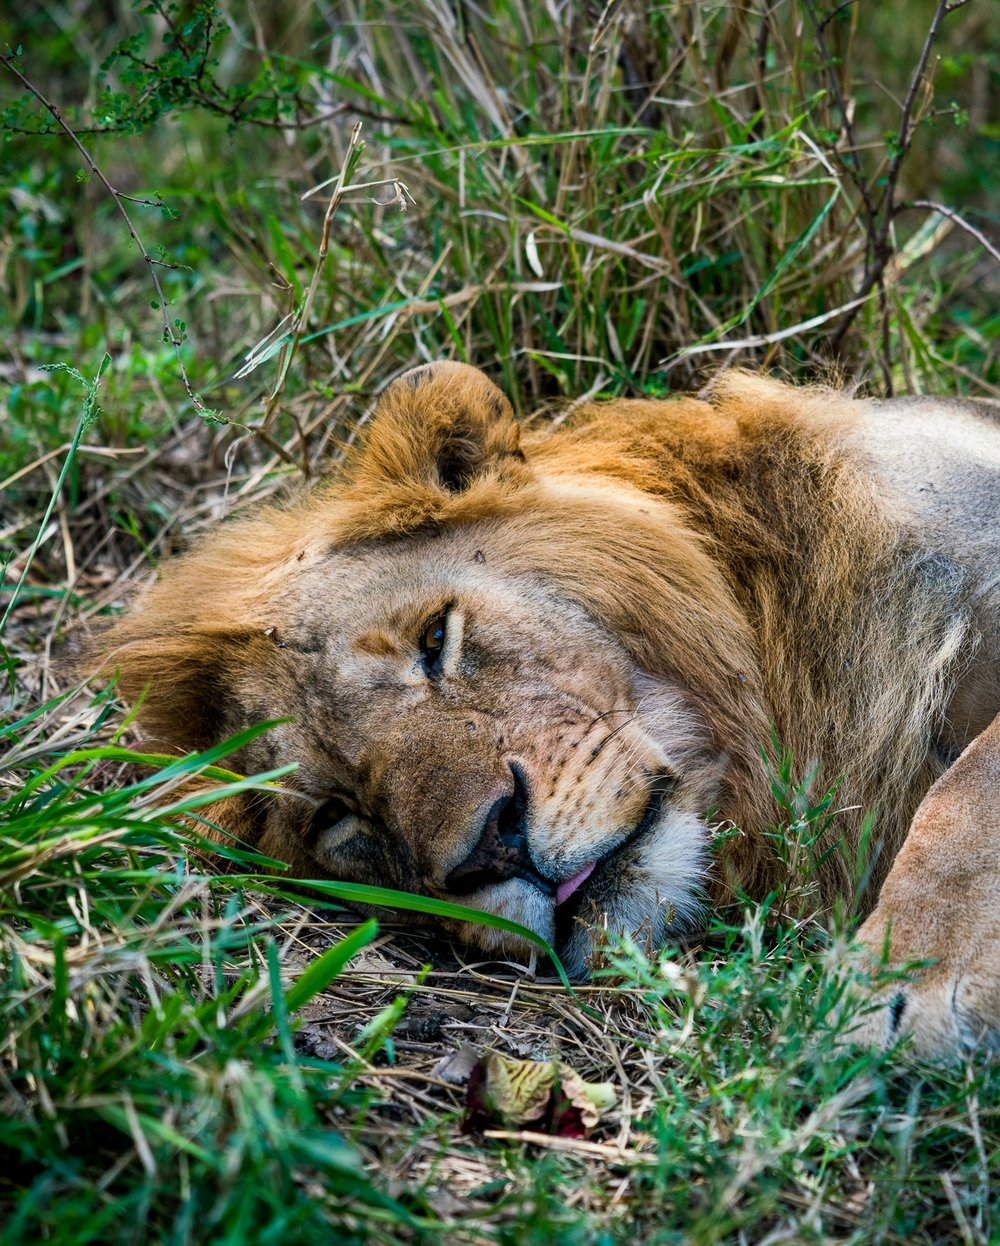 Male Lion resting in Maasai Mara - Kin Travel Ph. Dave Krugman